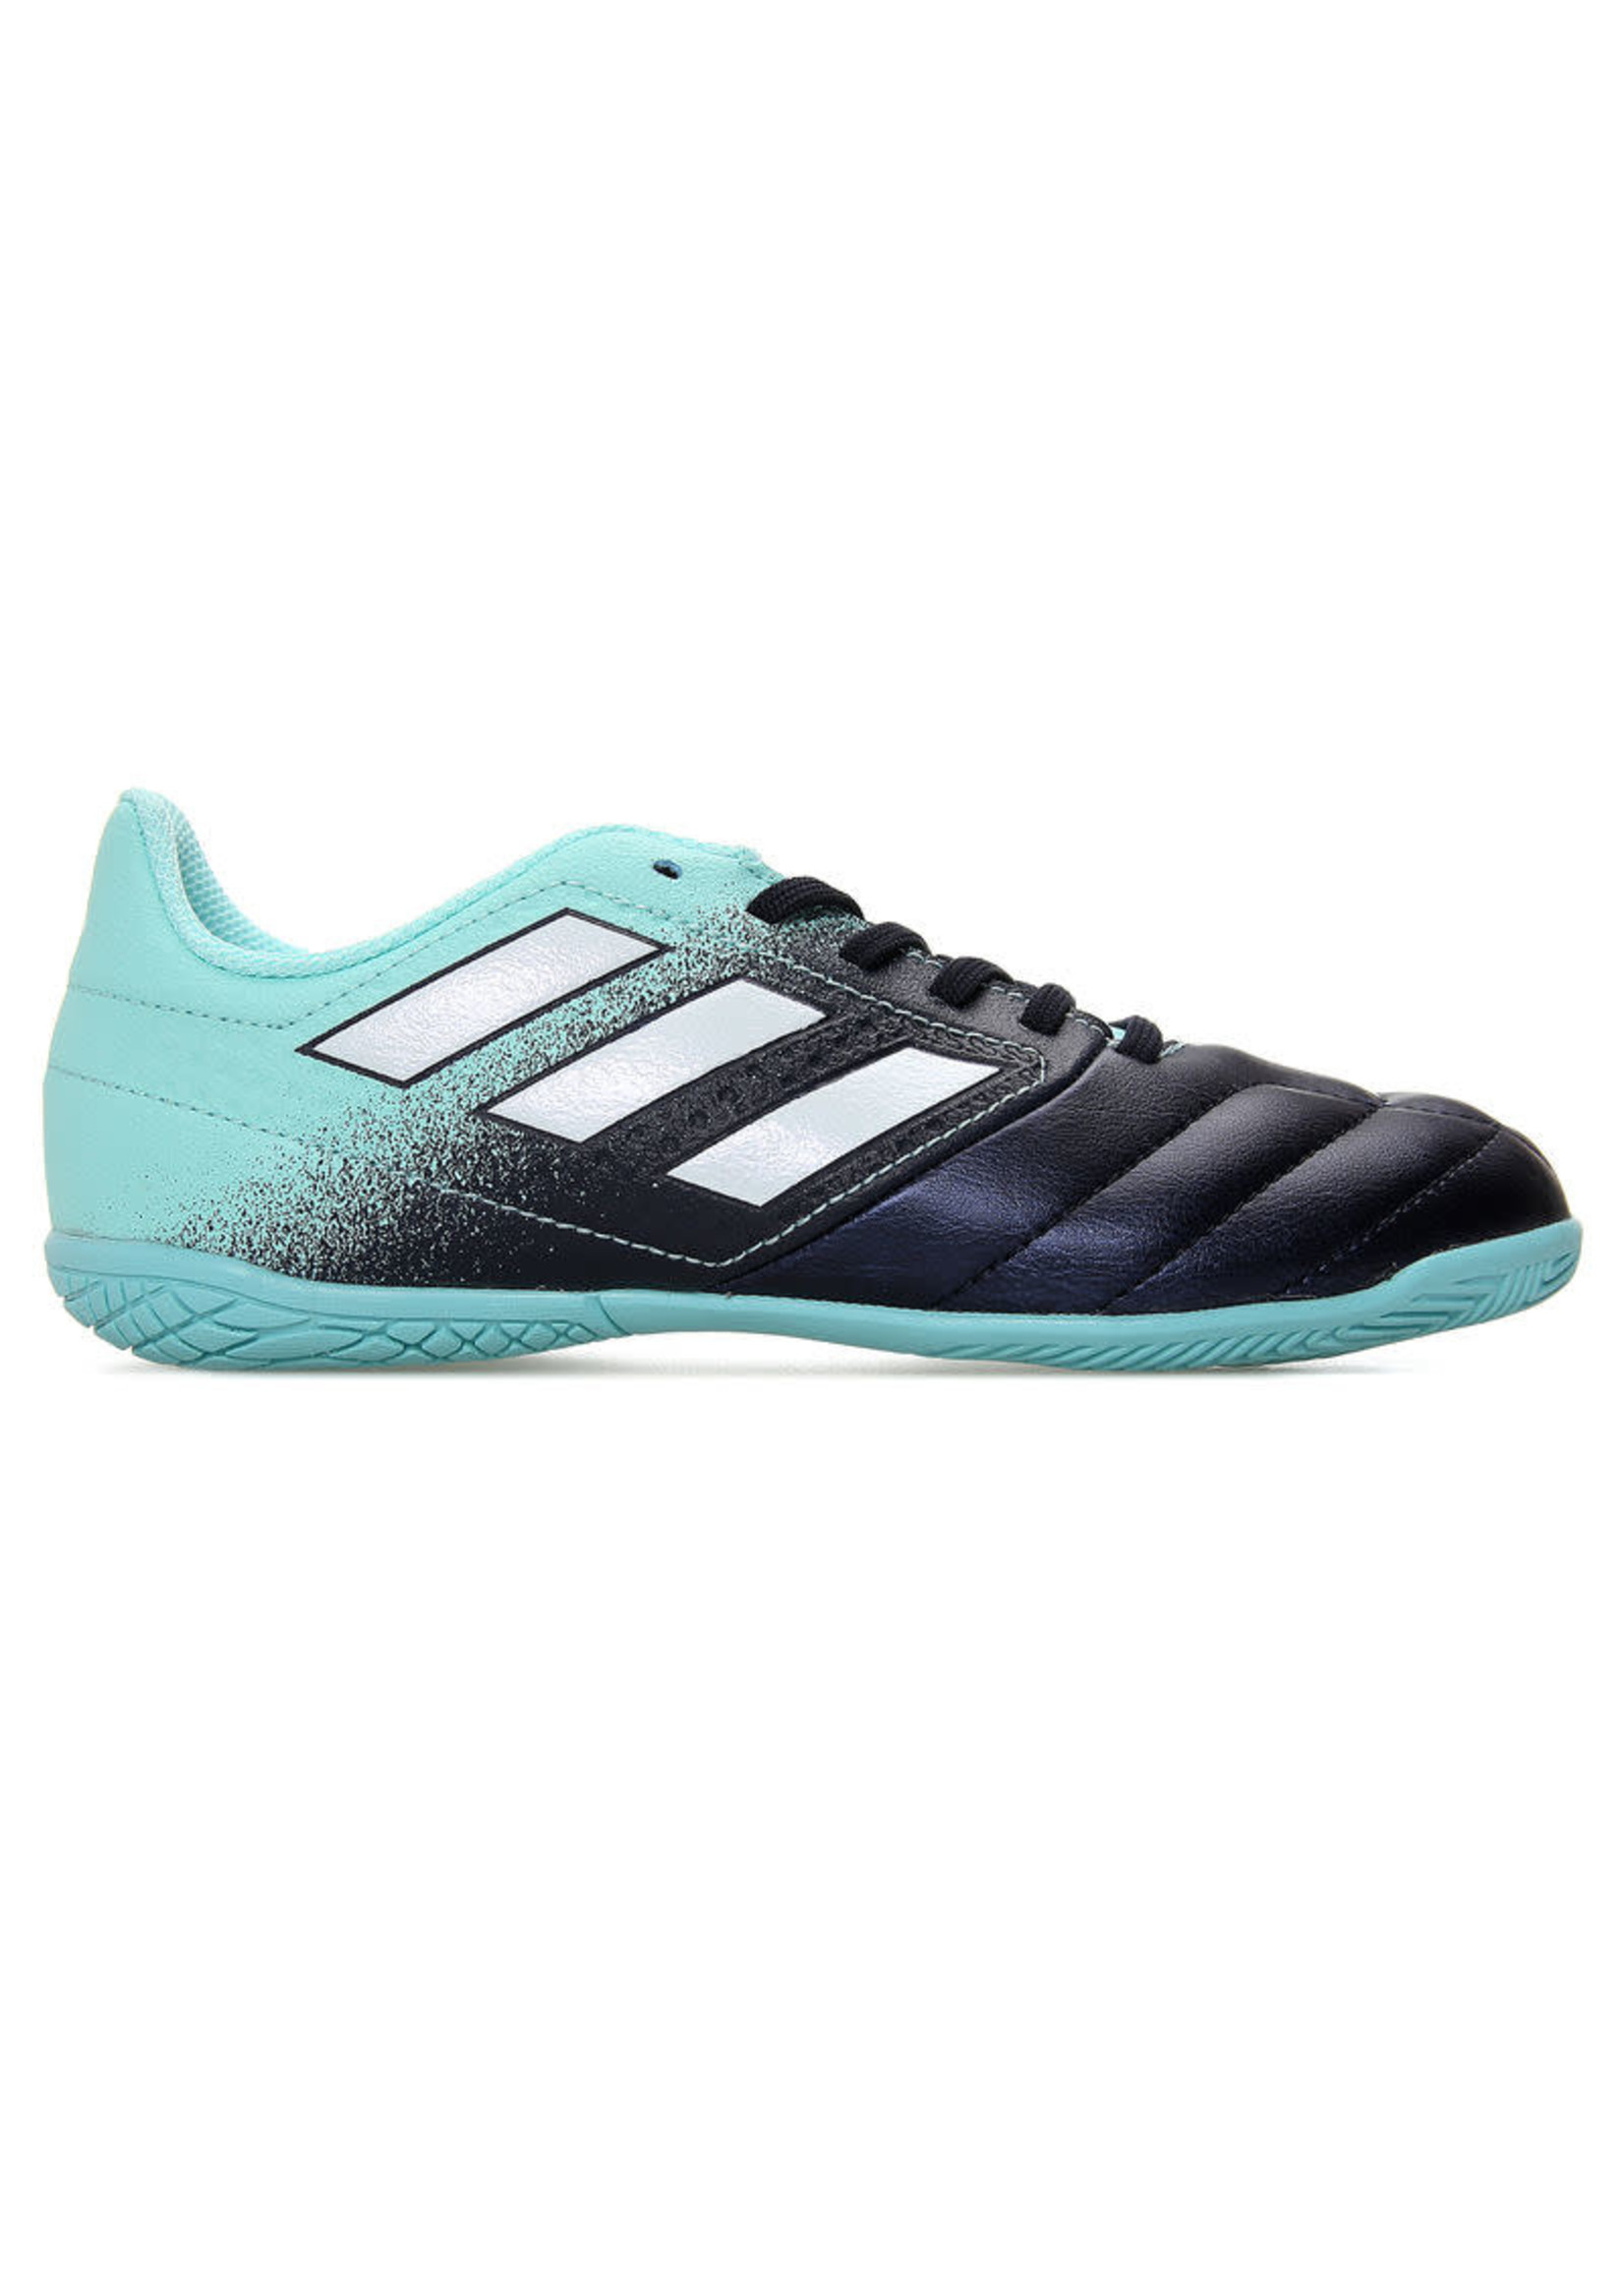 Adidas Ace 17.4 IN Jr S77109